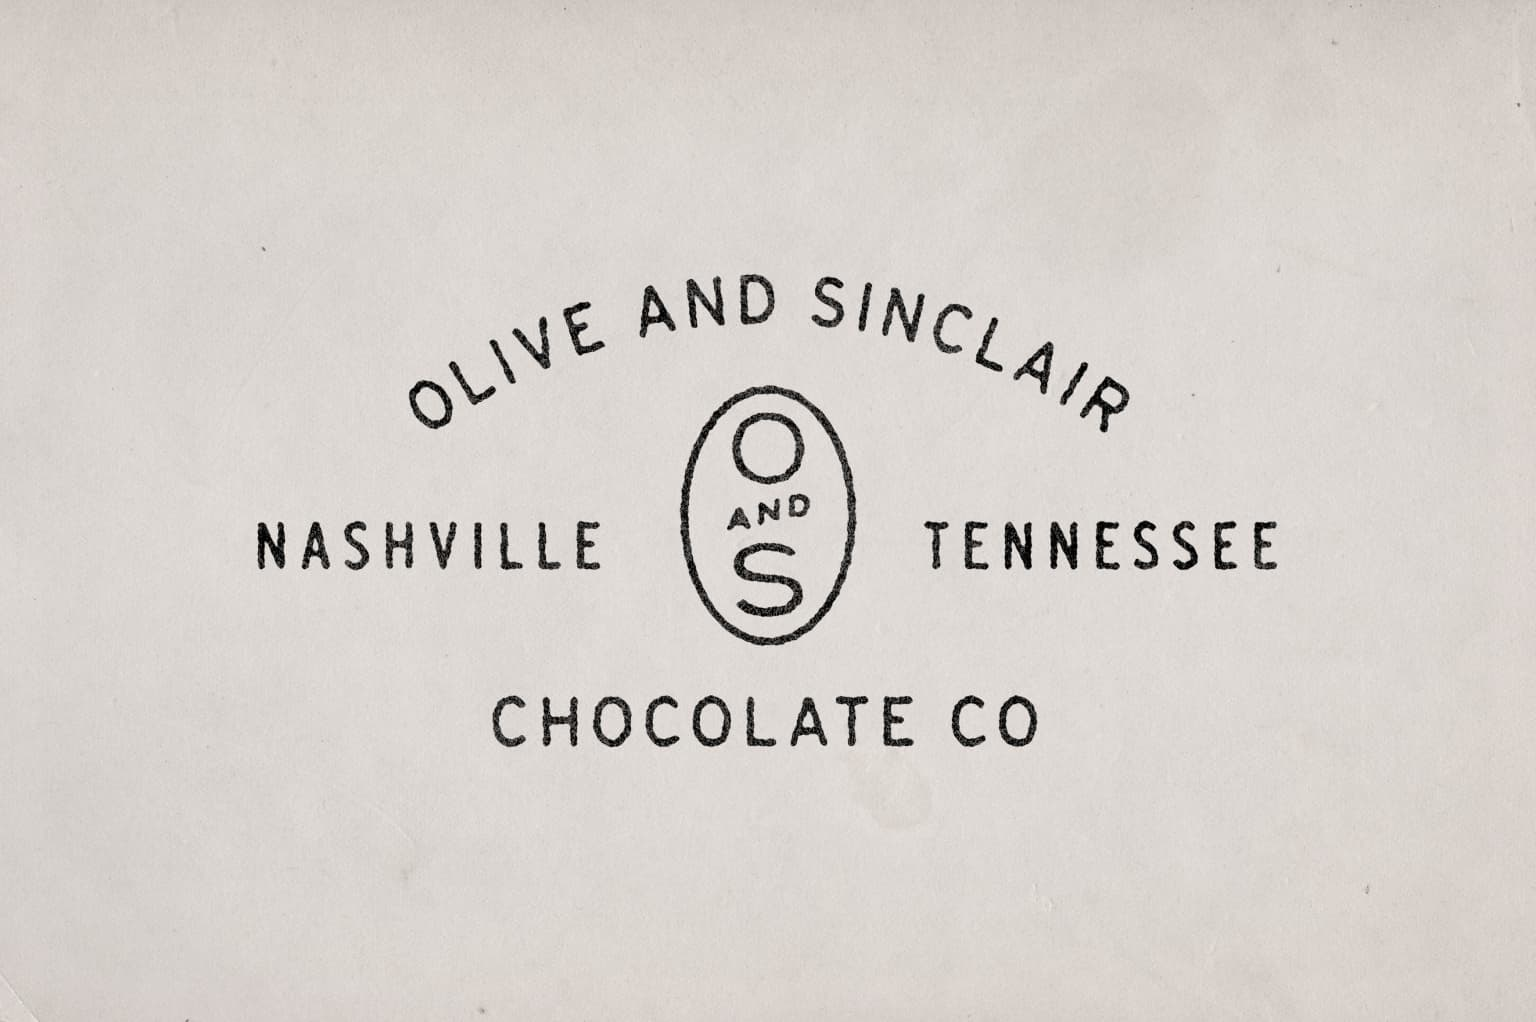 Olive & Sinclair